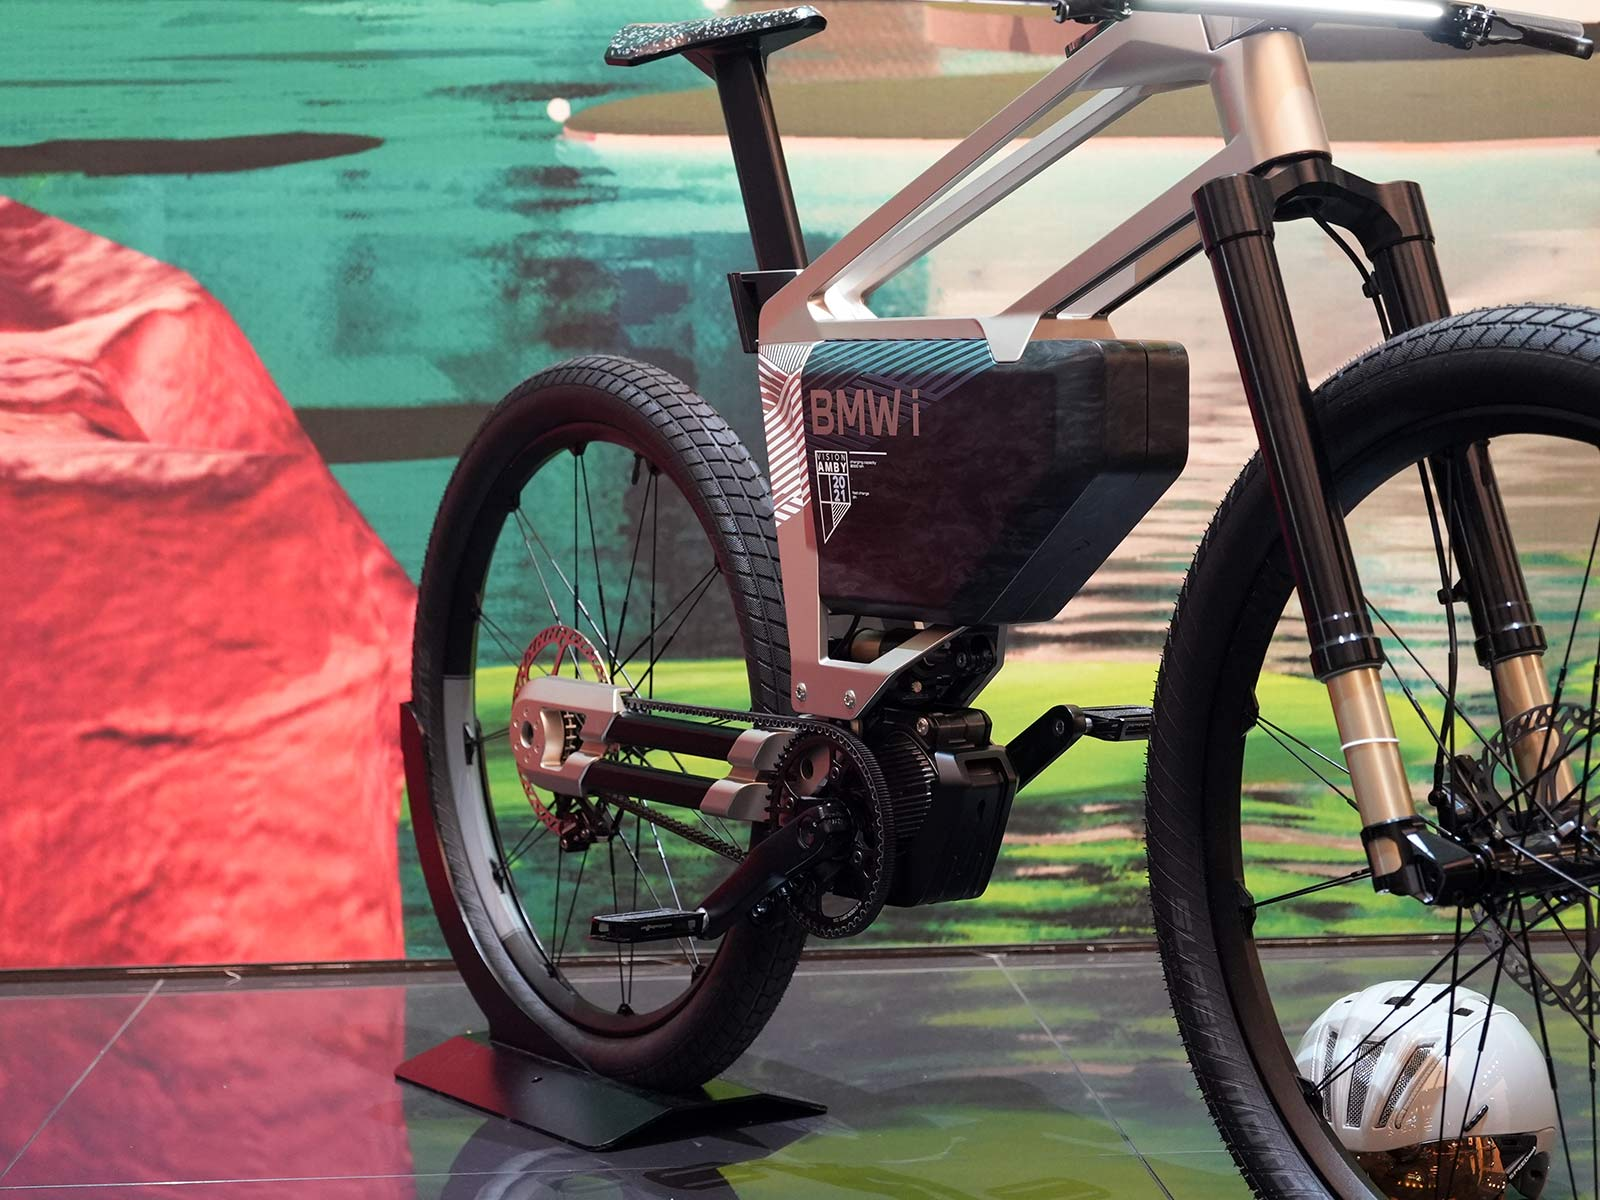 bmw concept bike from iaa mobility show